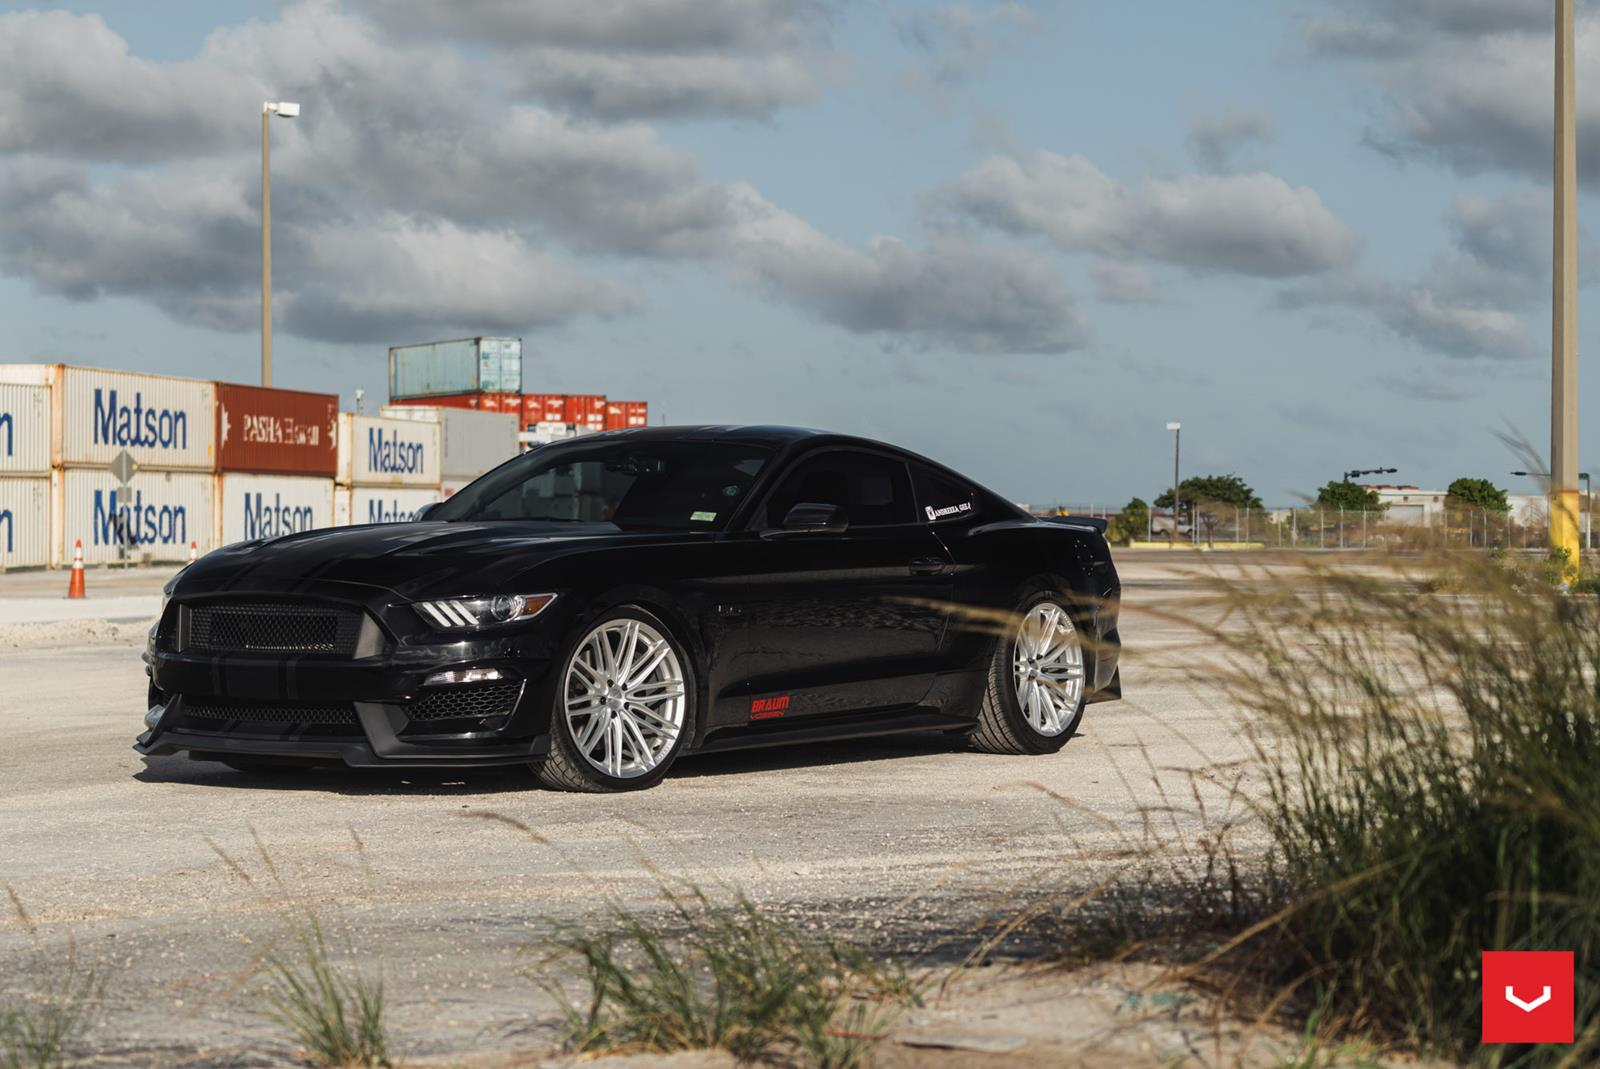 SHADOW-BLACK-FORD-MUSTANG-GT-S550-VOSSEN-VFS4-SILVER-HYBRID-FORGED-WHEELS.jpg